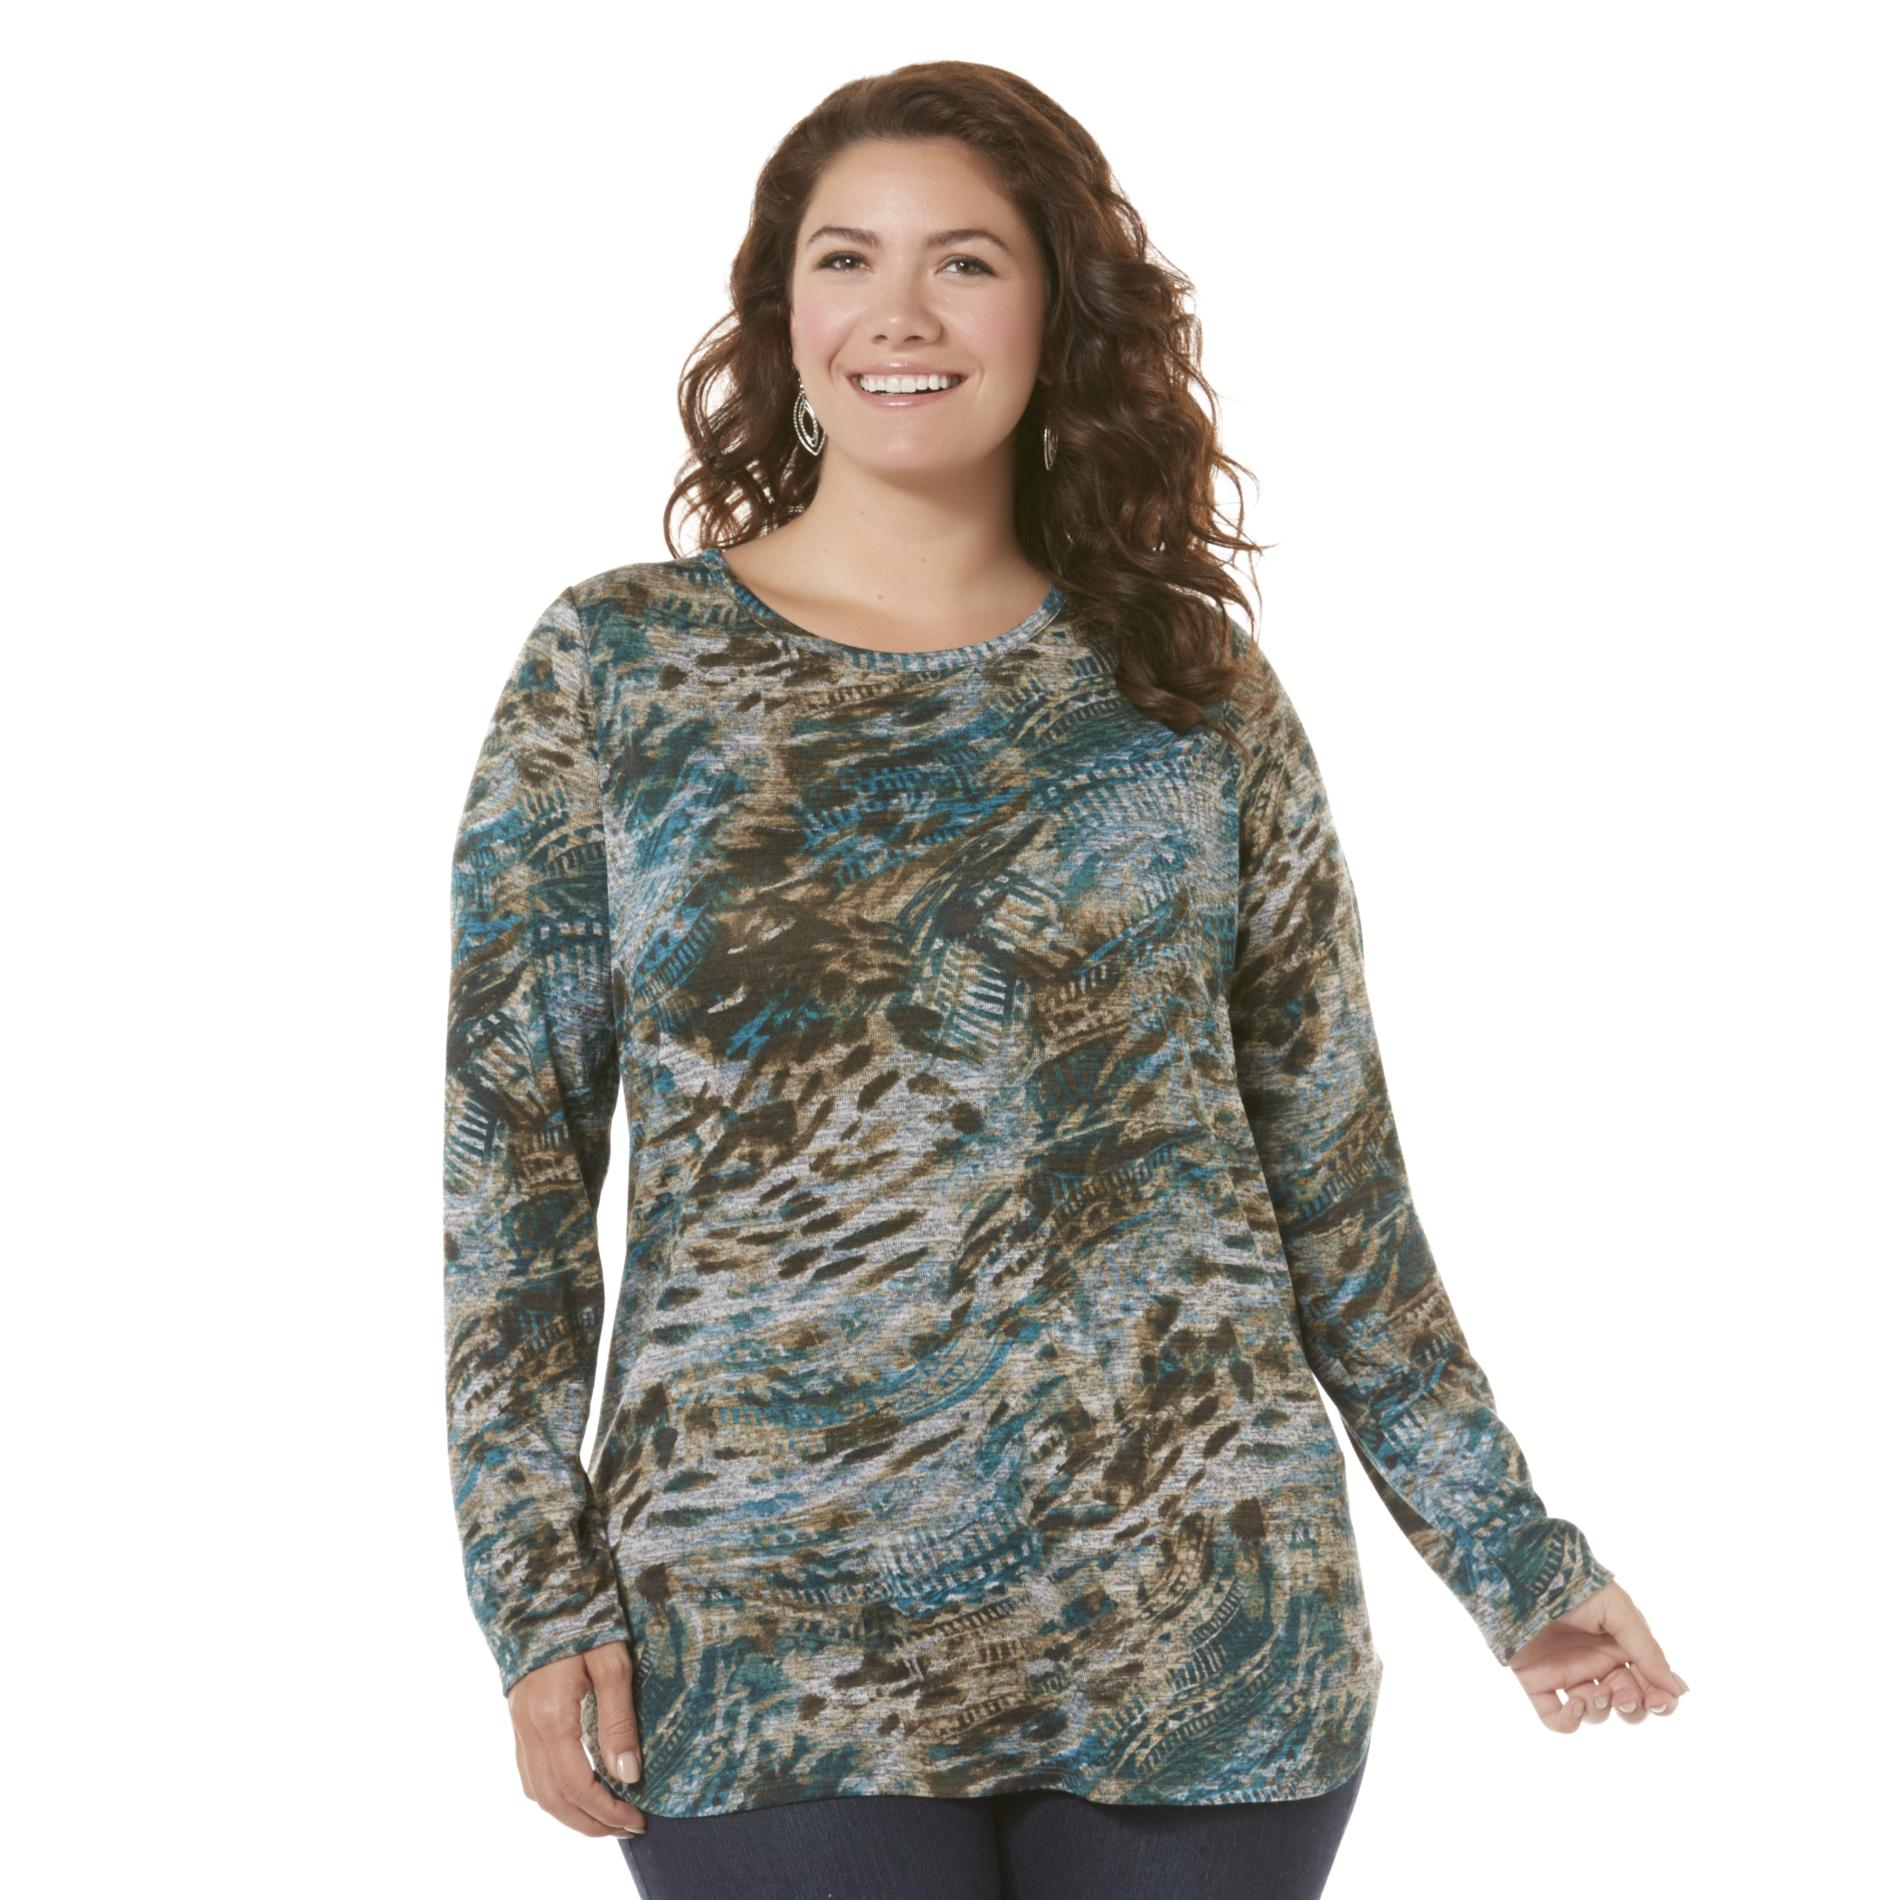 Basic Editions Women's Plus Graphic Top - Abstract